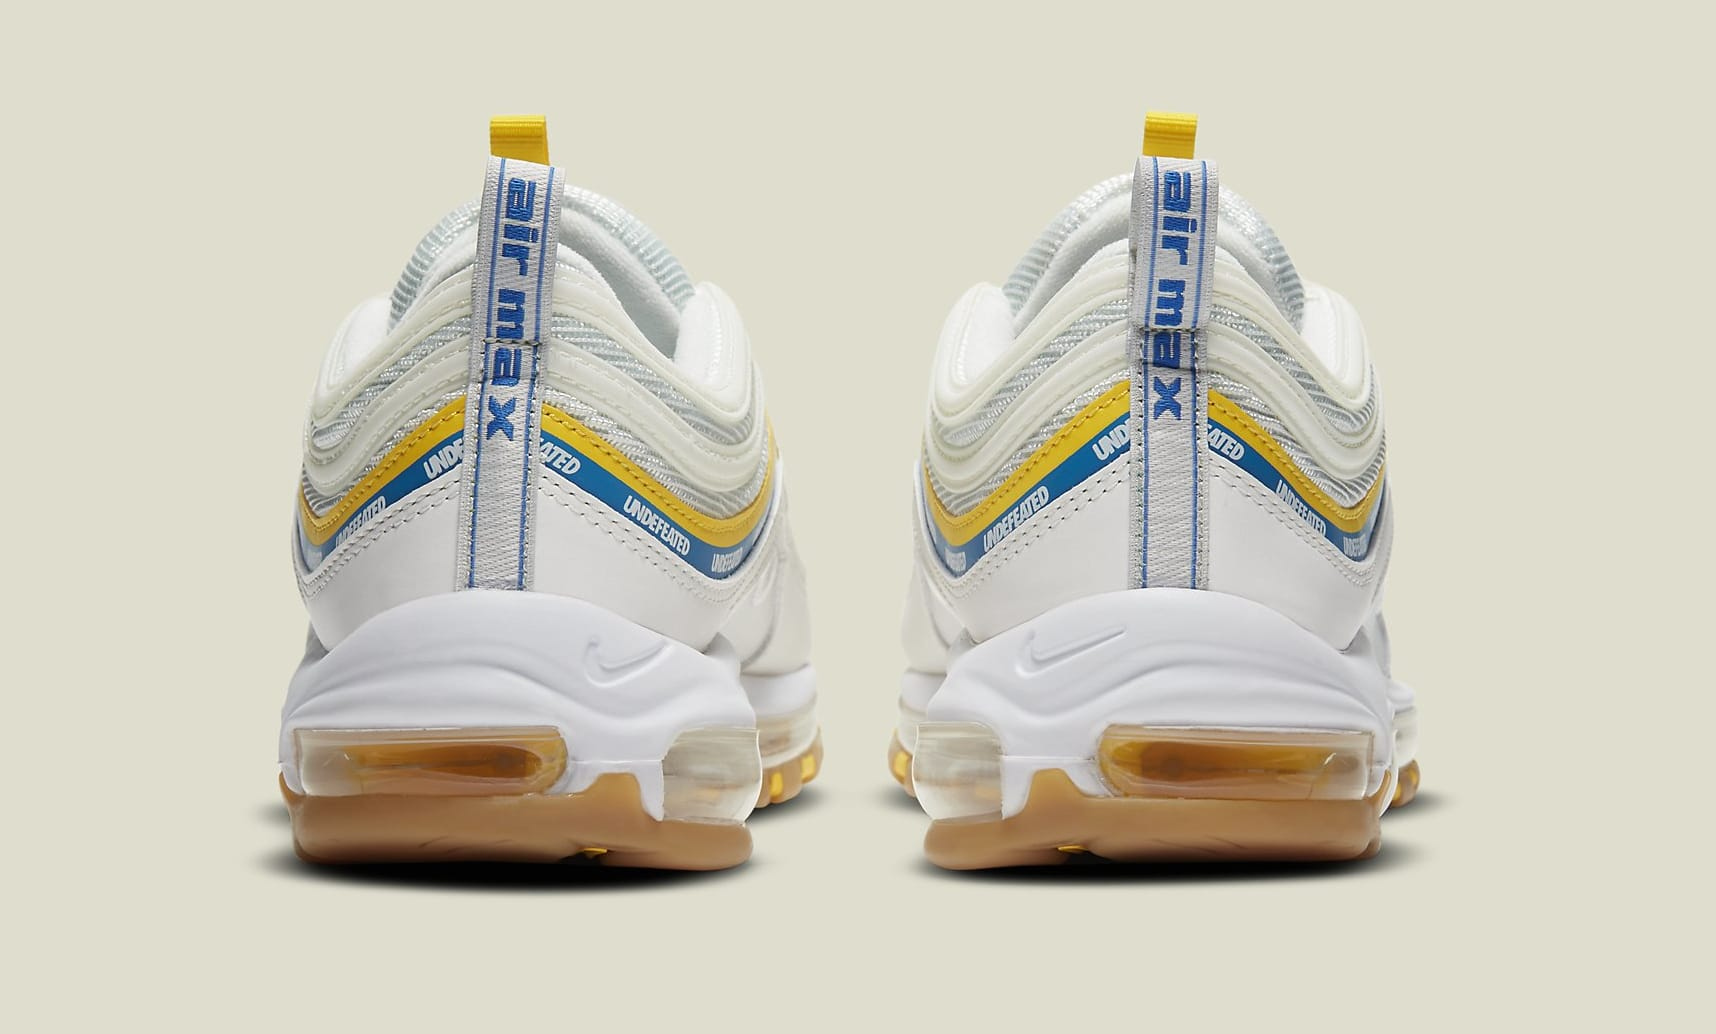 Undefeated x Nike Air Max 97 'Sail' DC4830-100 Heel